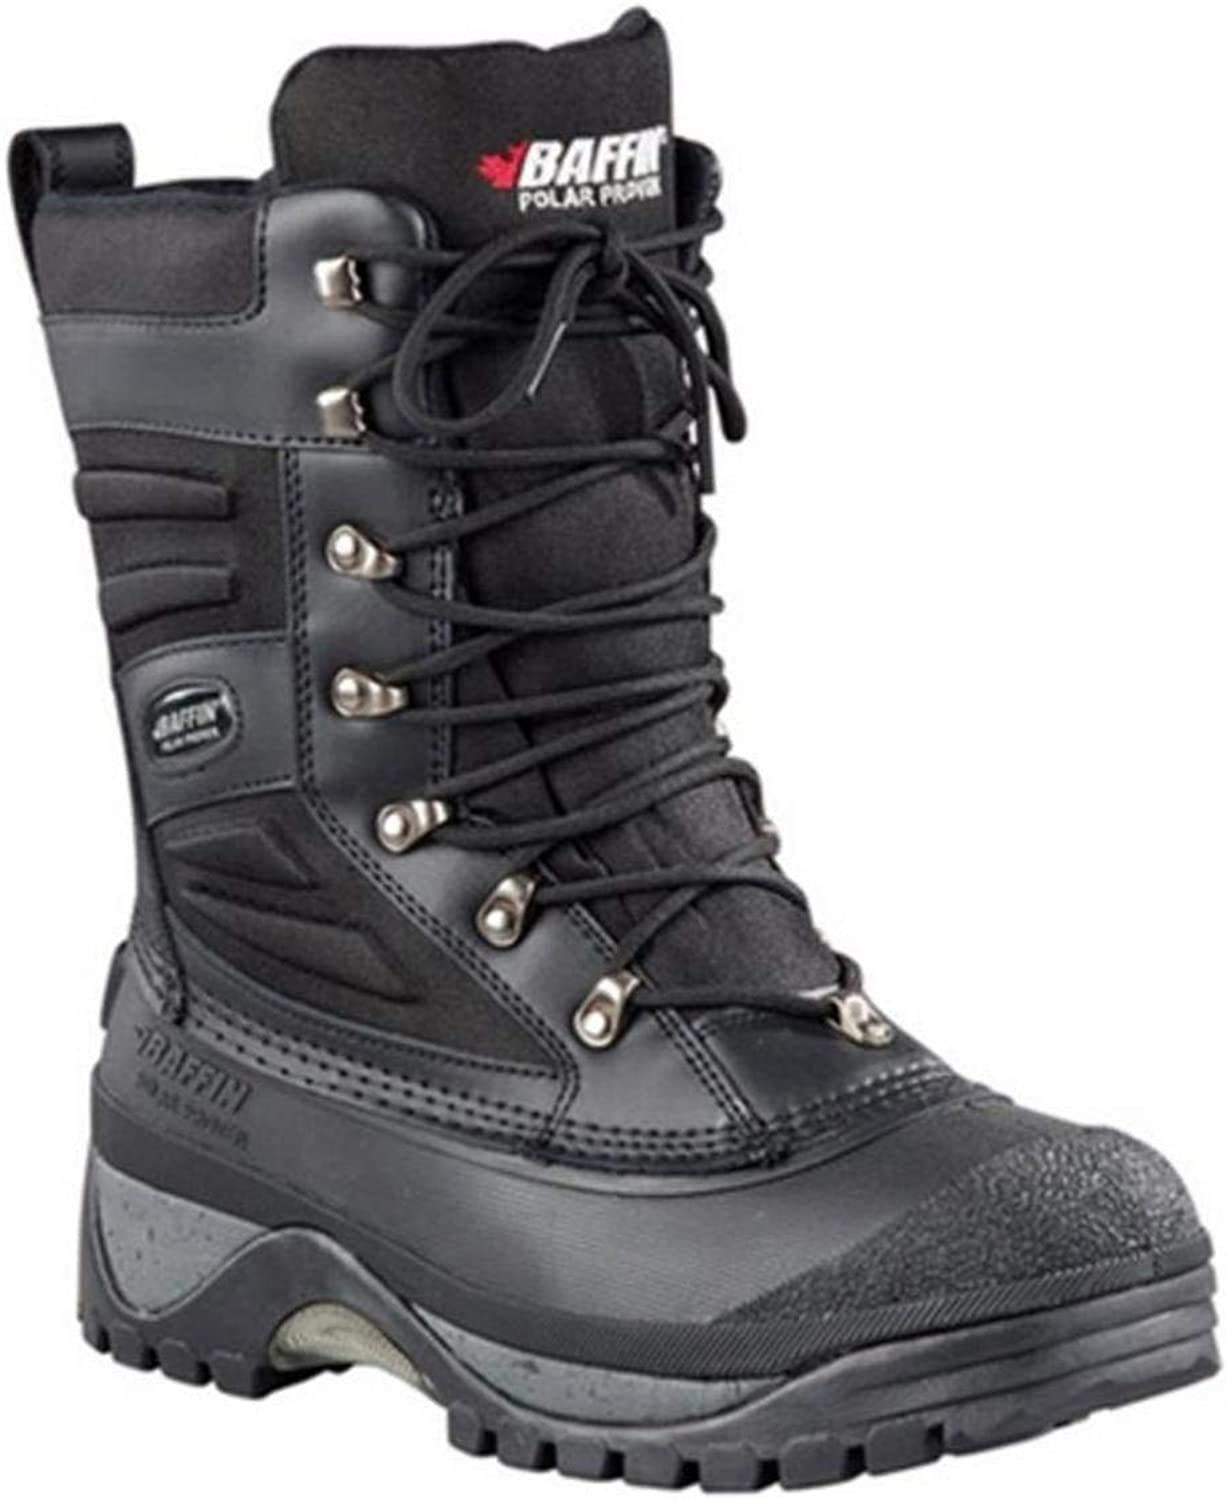 Baffin Crossfire Snowmobile Boots Black 7